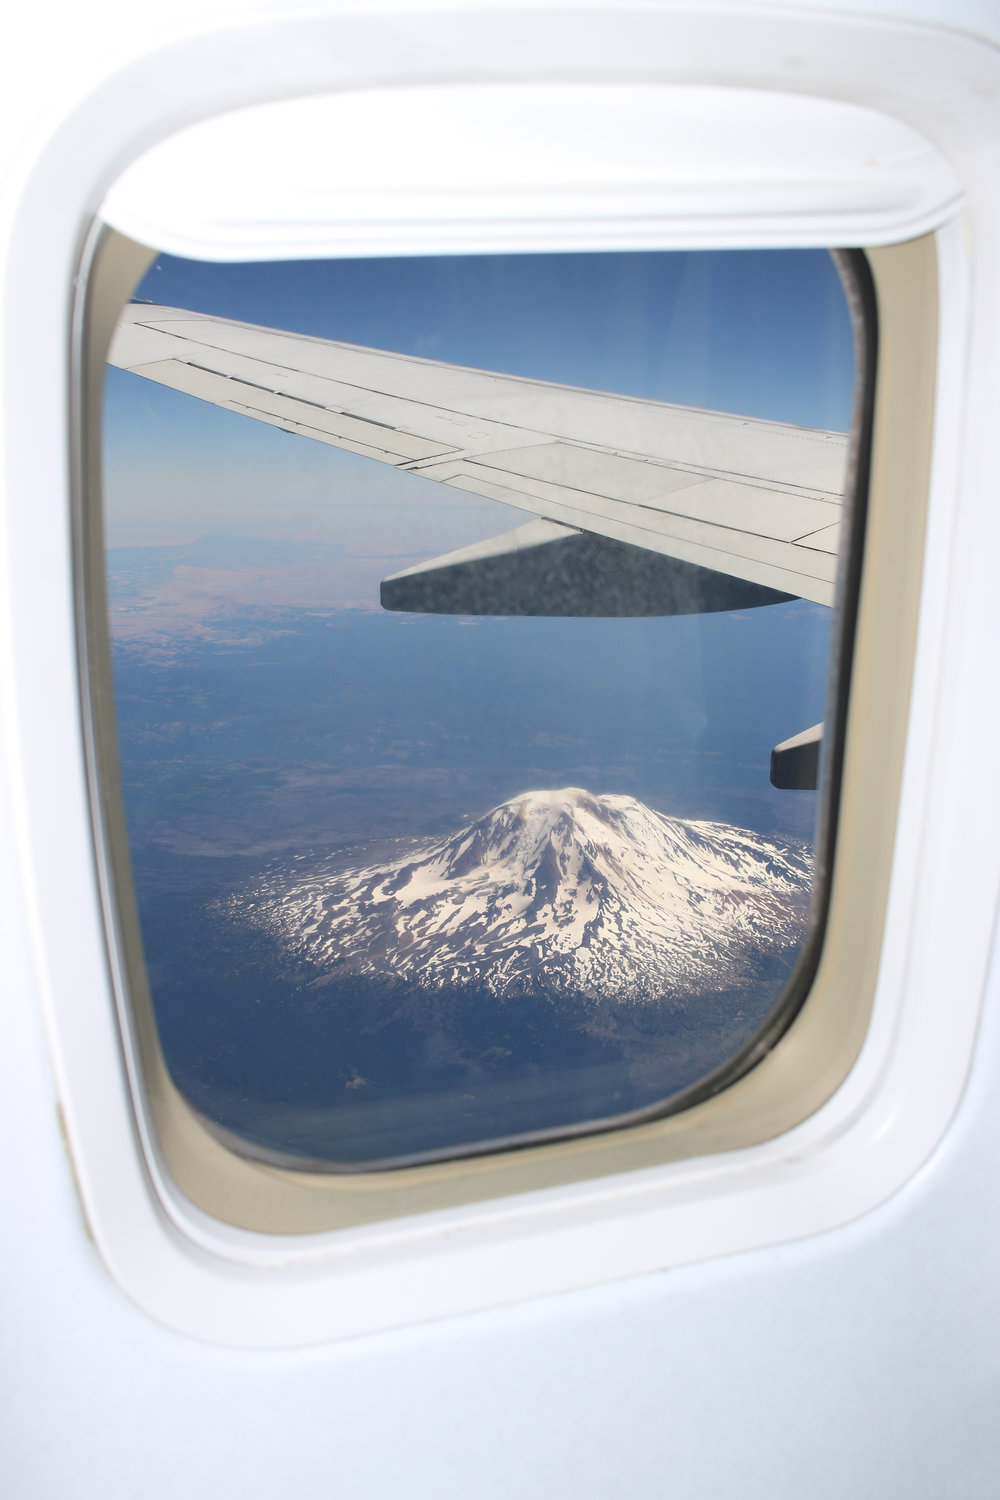 Washington - Mt. Saint Helens